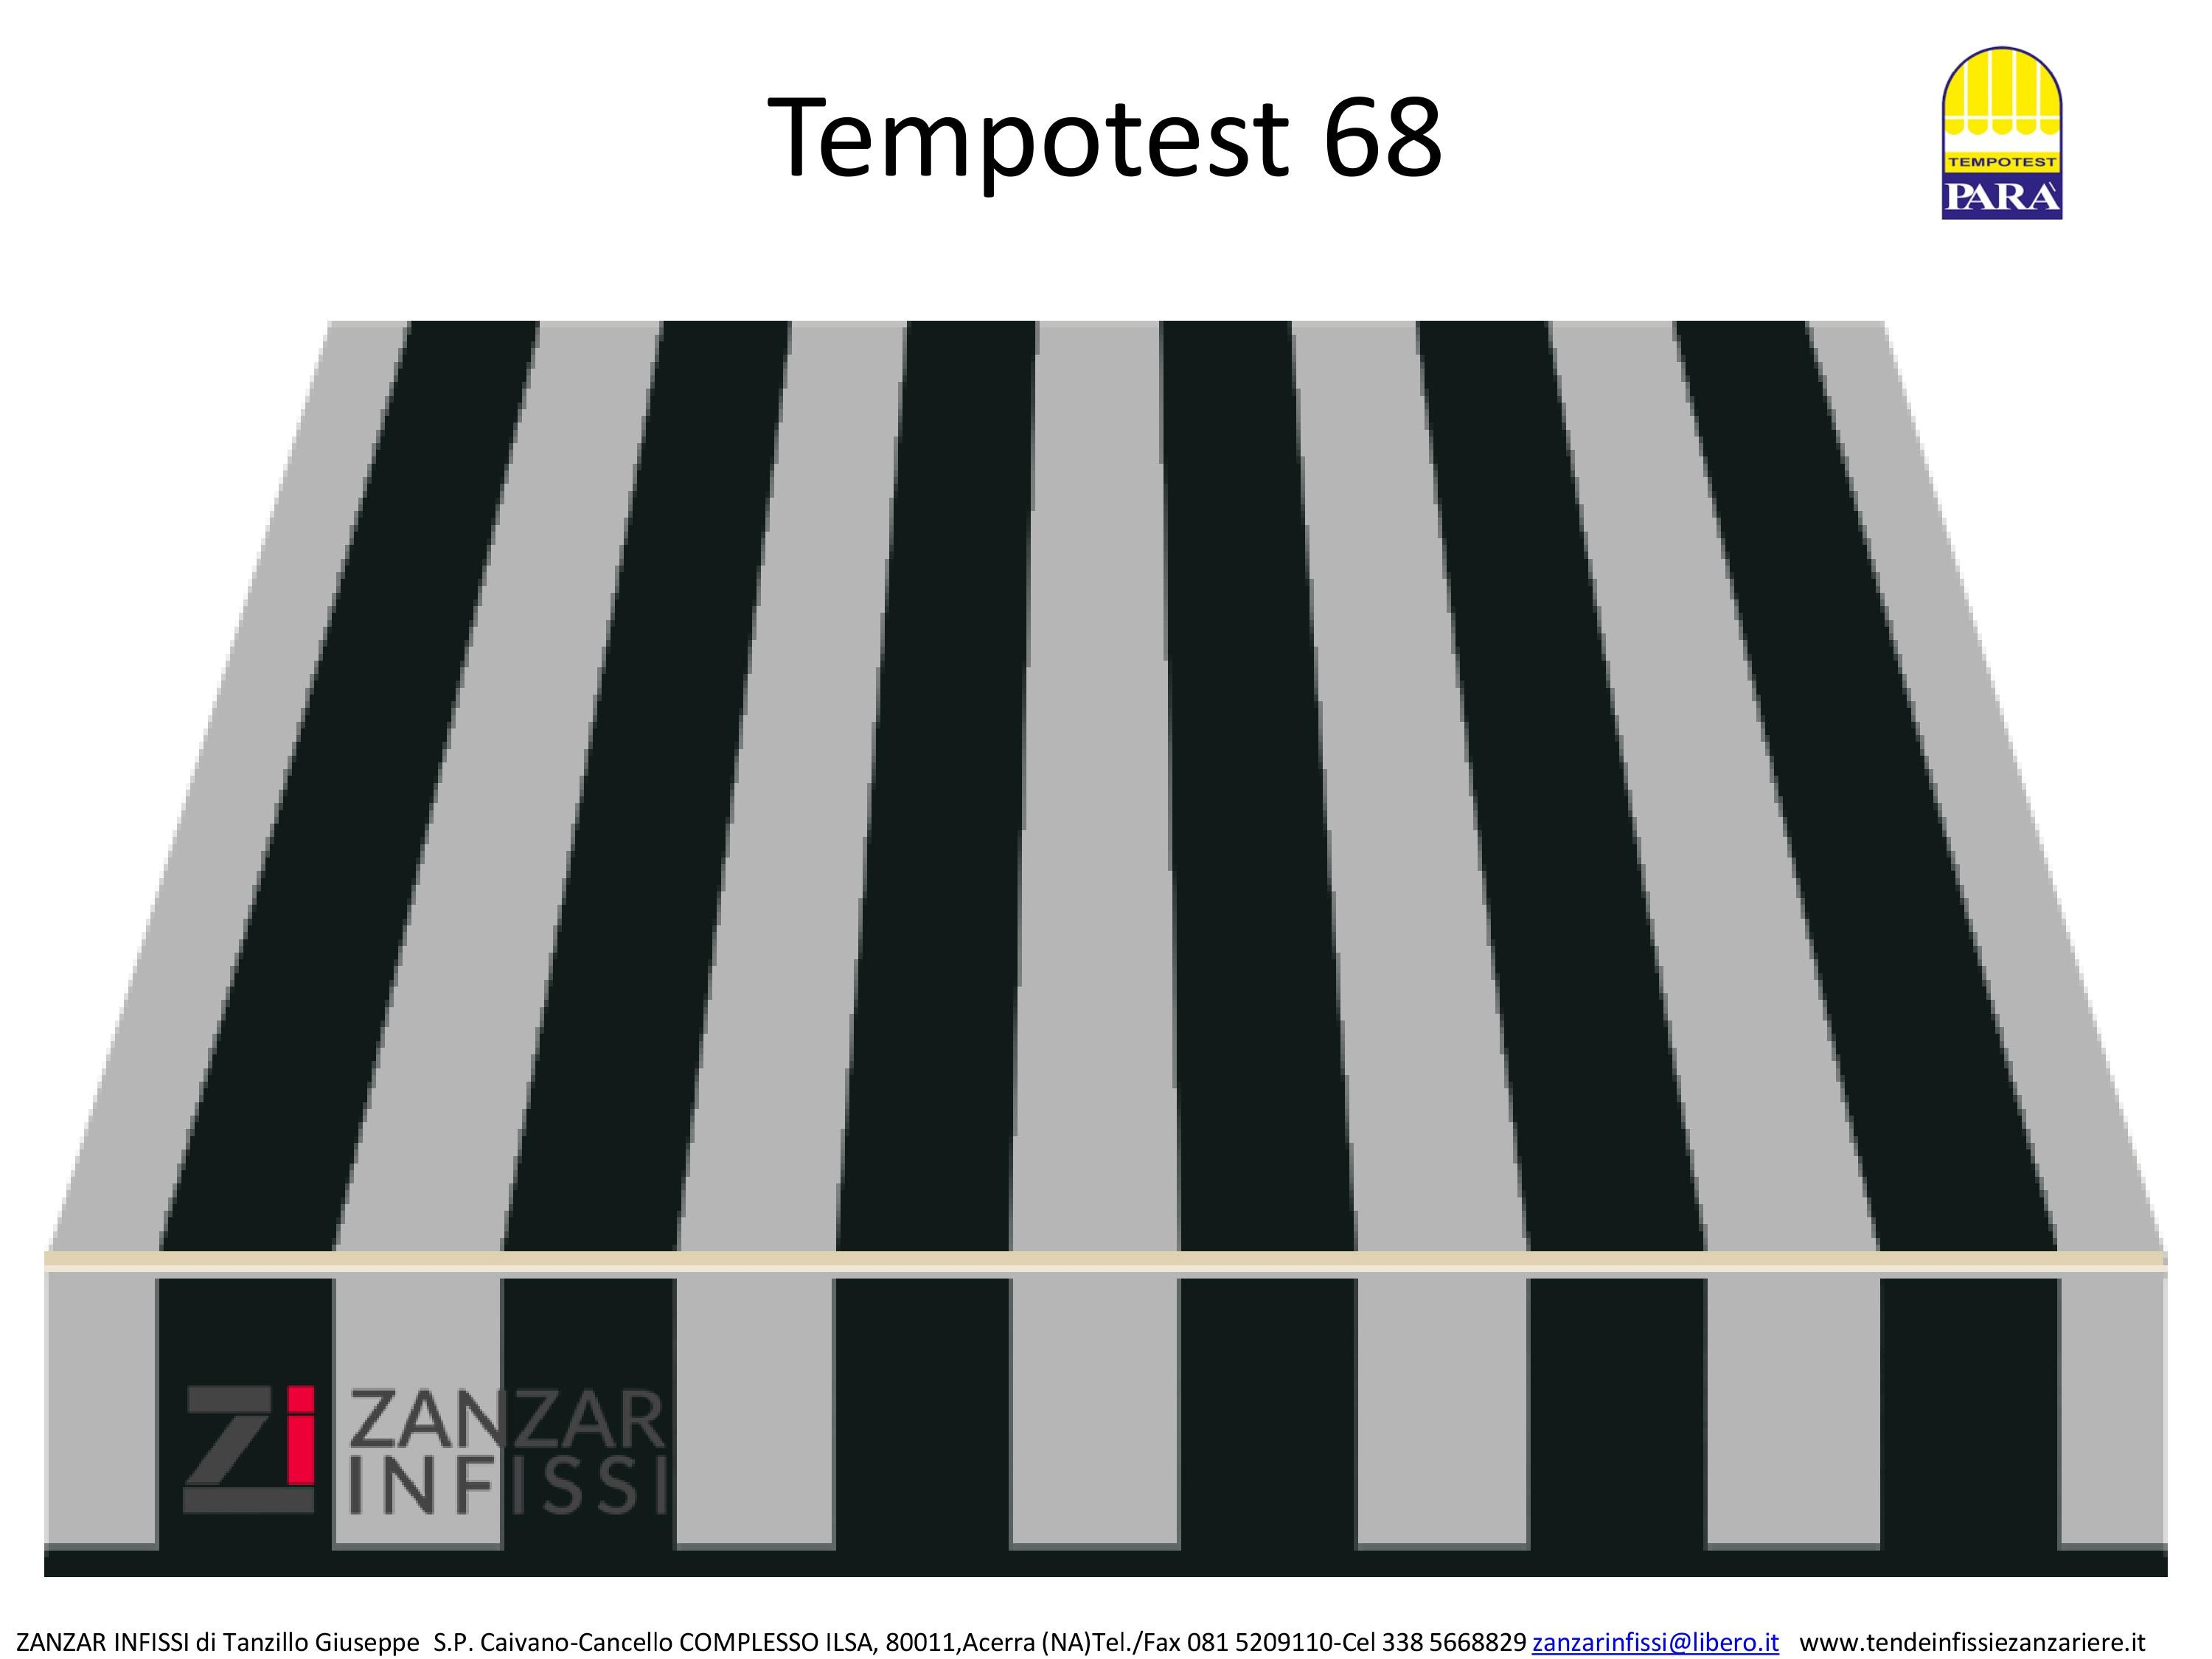 Tempotest 68